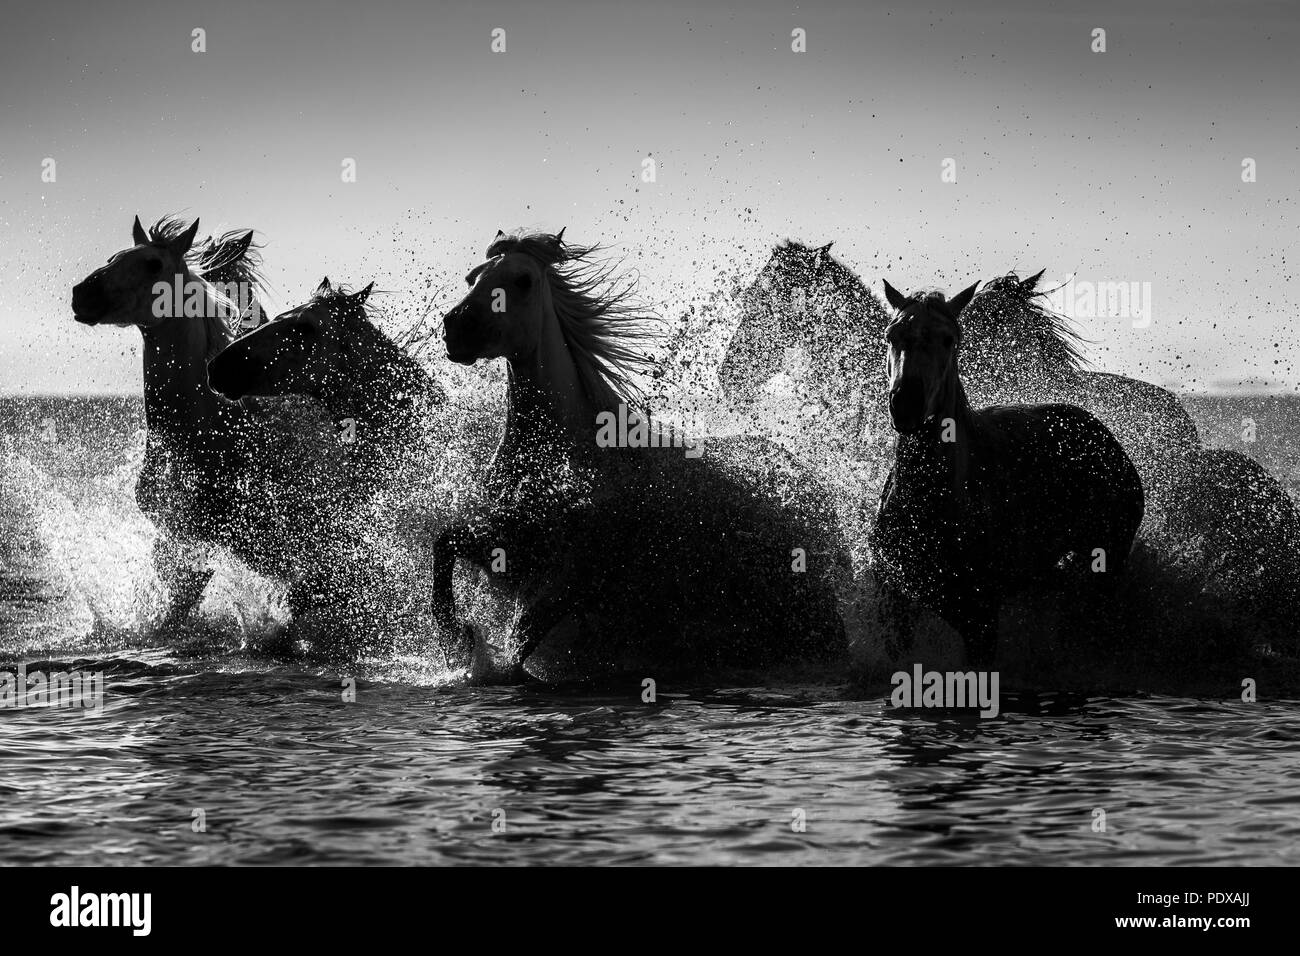 Camargue horses galloping through the sea, Provence, France. - Stock Image